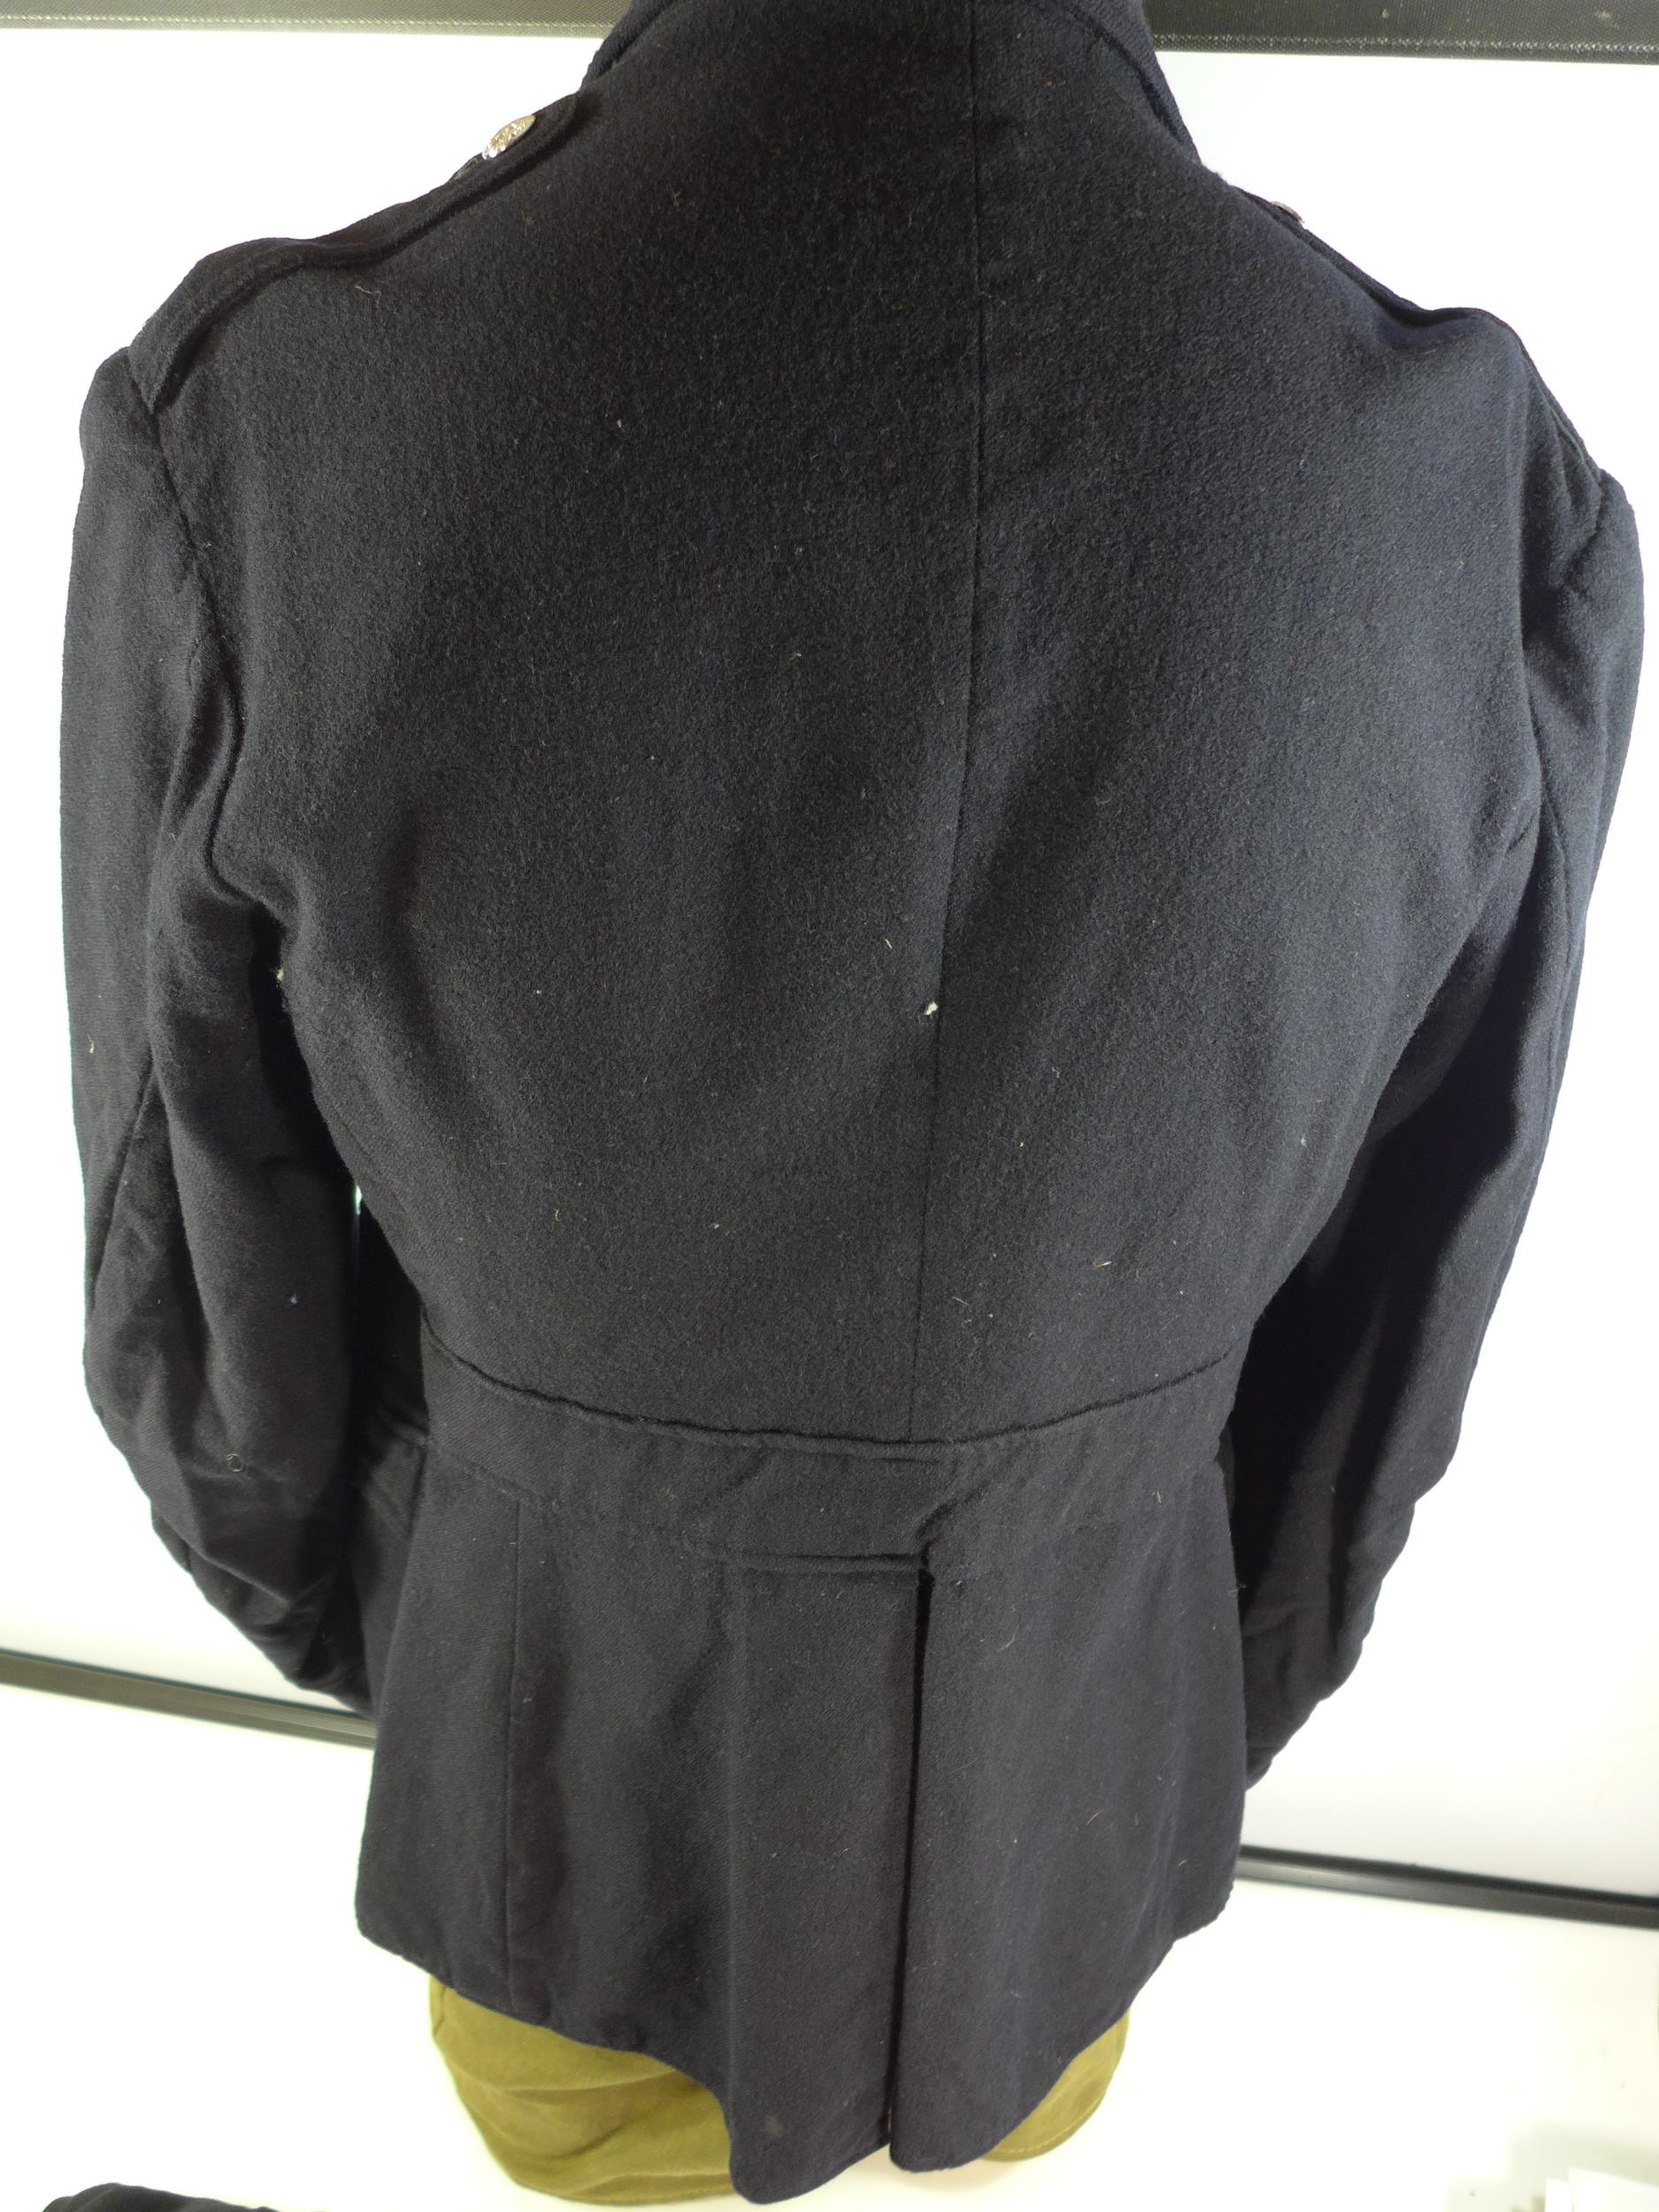 TWO MANCHESTER SHIP CANAL POLICEMANS JACKETS - Image 5 of 5